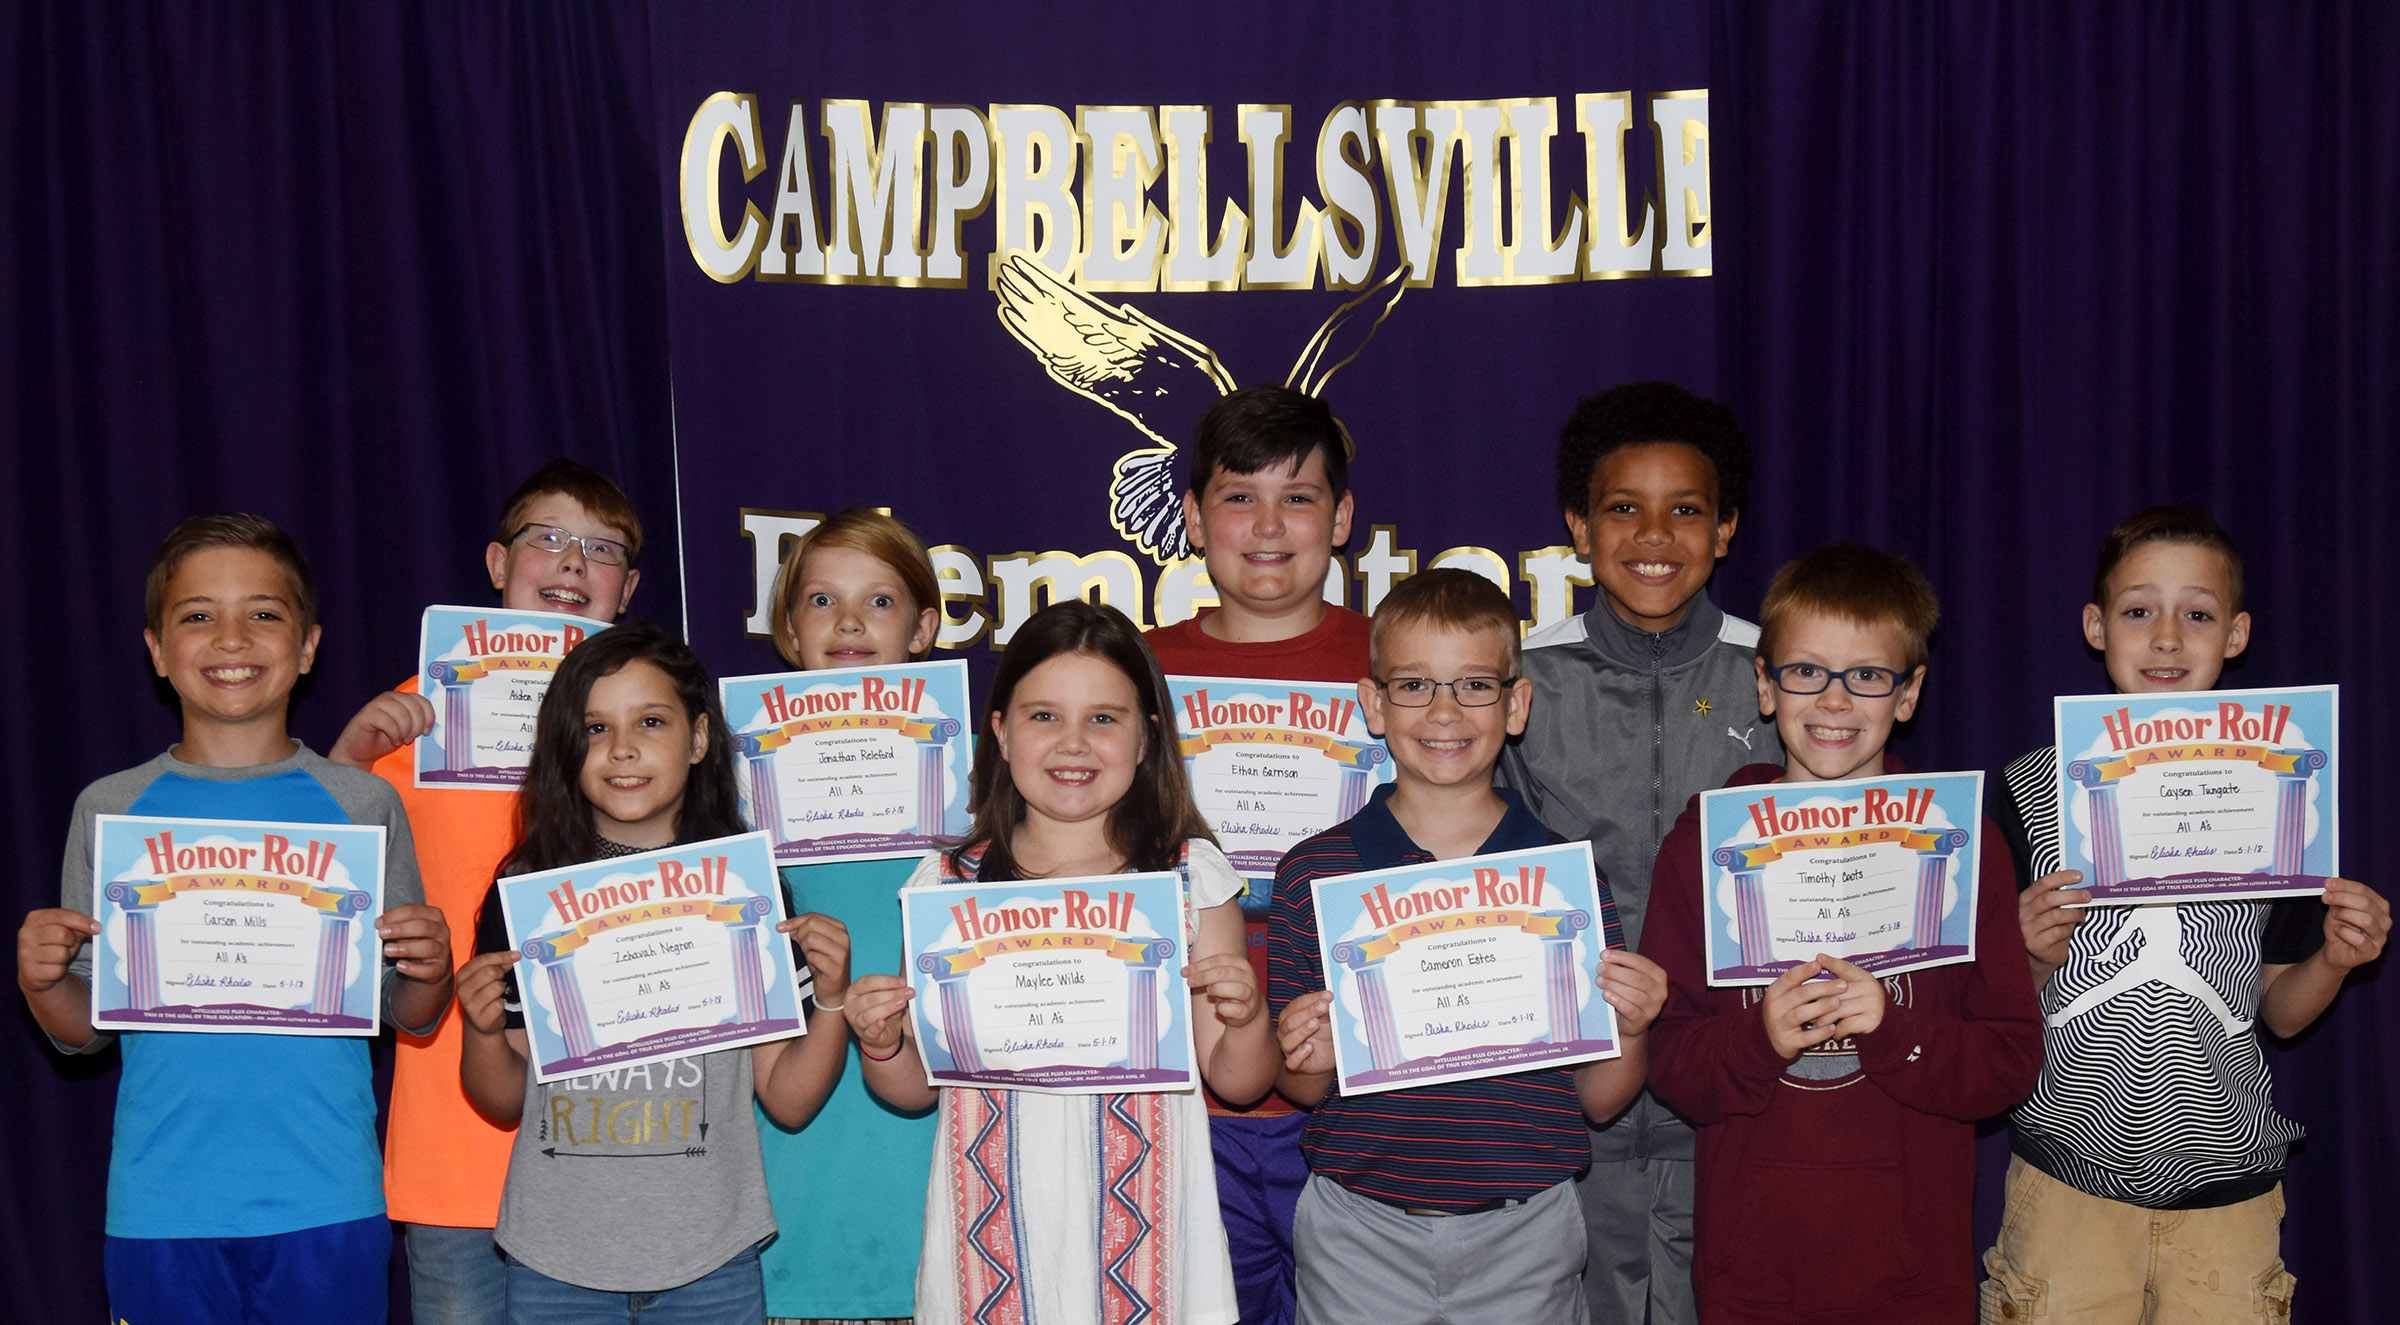 CES fourth-graders honored for being named to the All A honor roll for the first three nine-week grading period are, from left, front, Carson Mills, Zehavan Negron, Maylee Wilds, Cameron Estes, Connor Coots and Caysen Tungate. Back, Aidan Phillips, Jonathan Releford, Ethan Garrison and Christian Hart. Absent from the photo are Kennedy Griffiths and Vivian York.